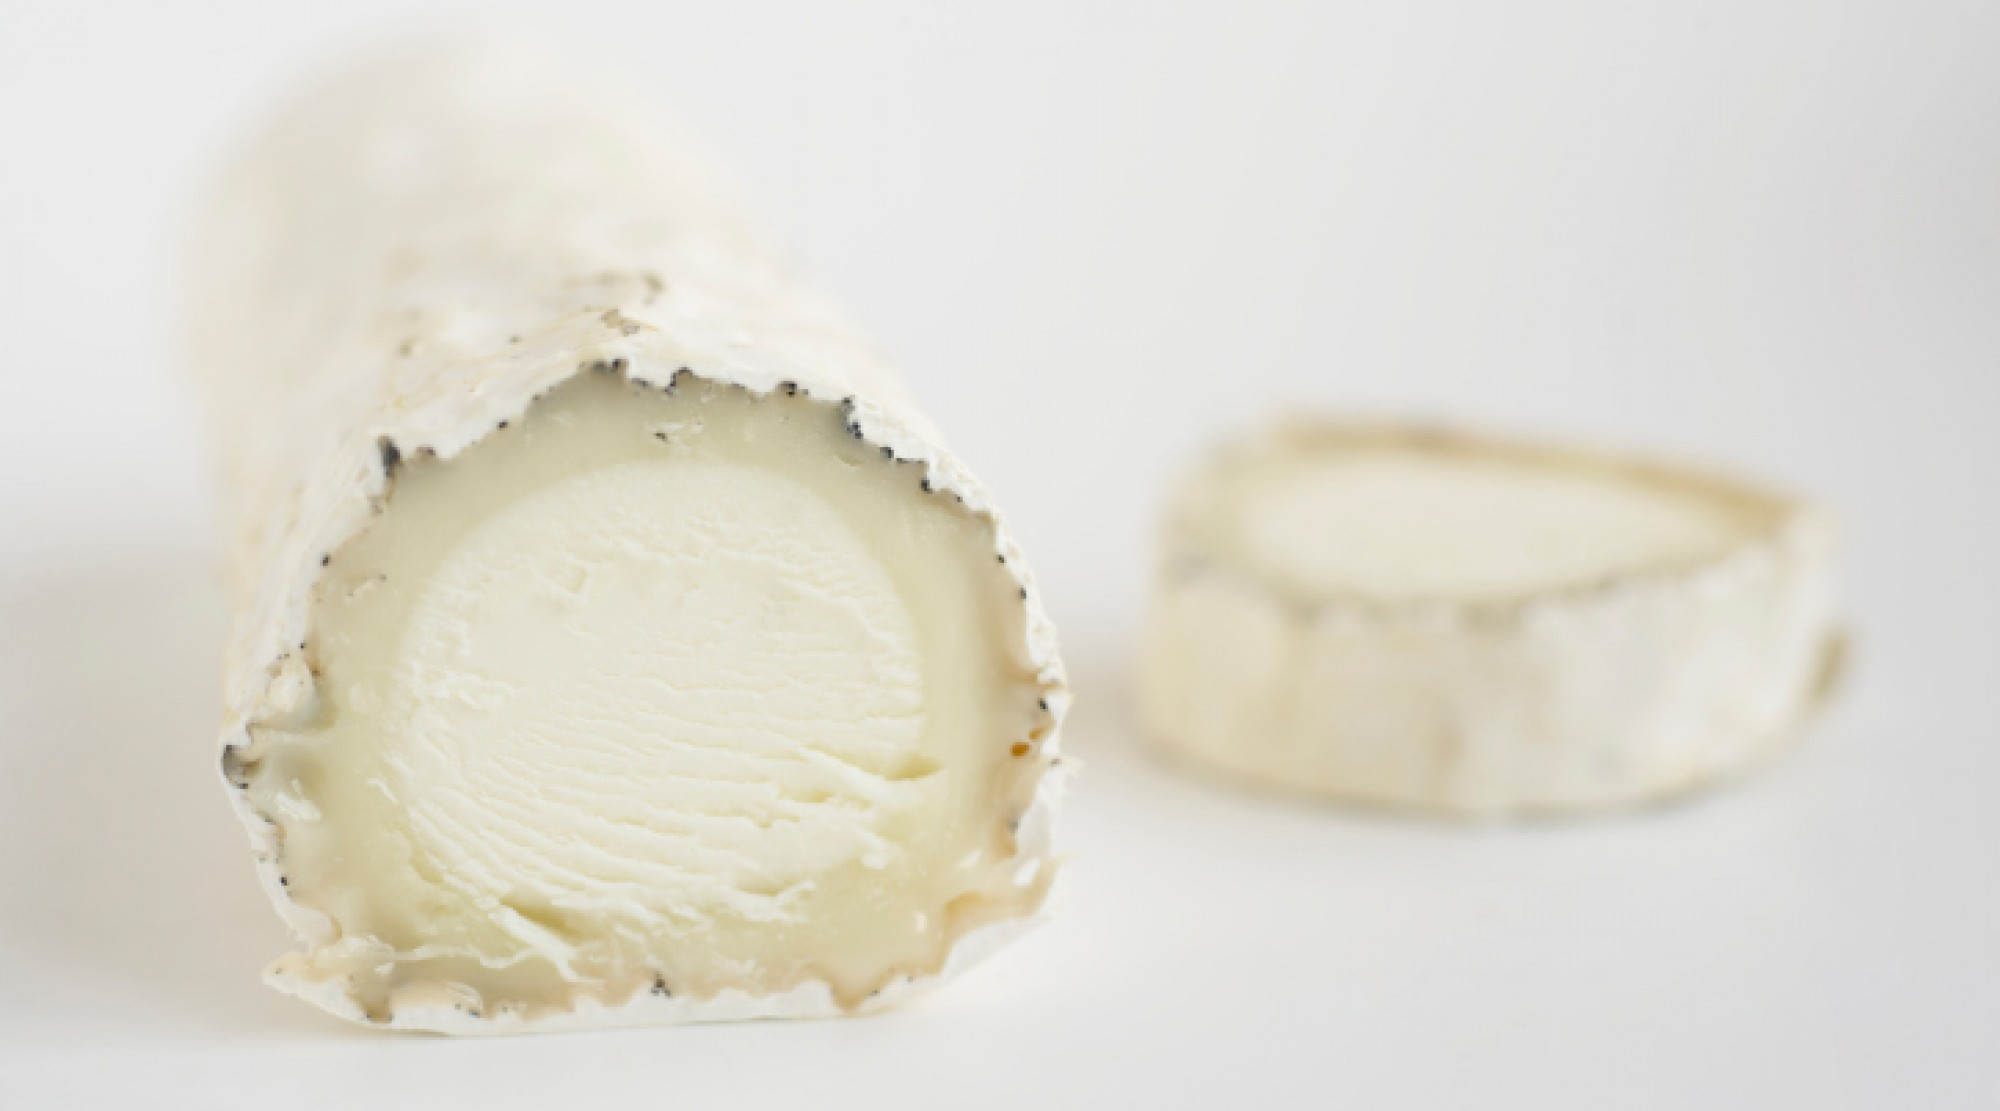 white goat cheese rounds